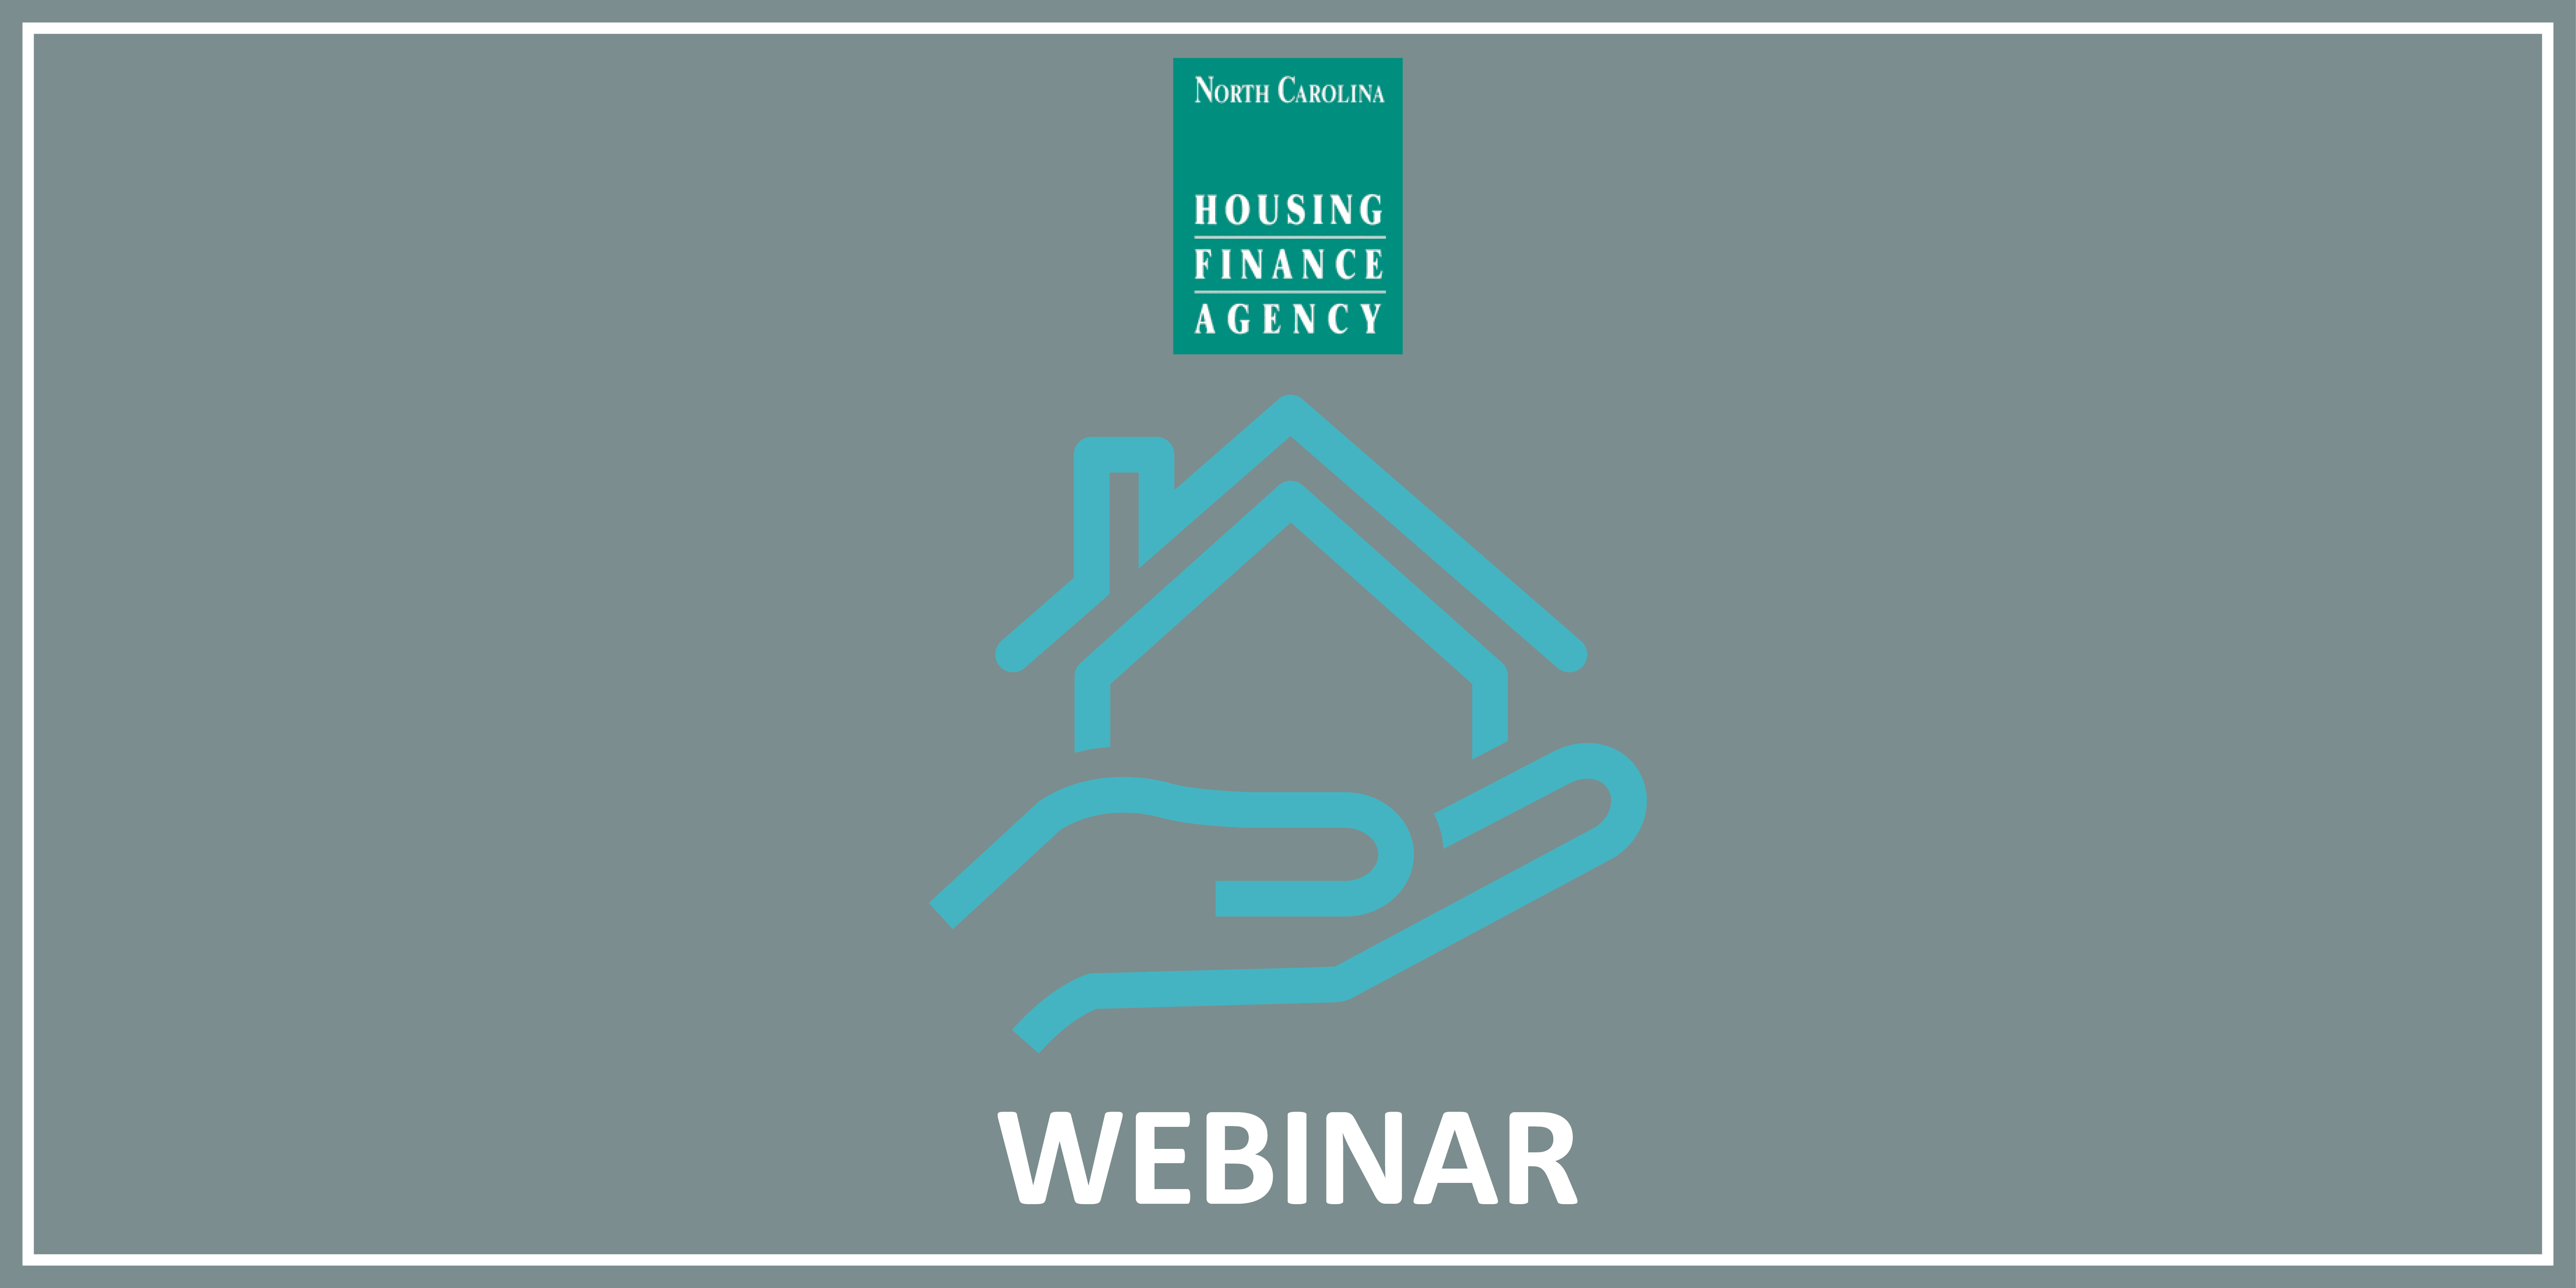 Blue outline of hand holding a house with Agency logo above and webinar written below